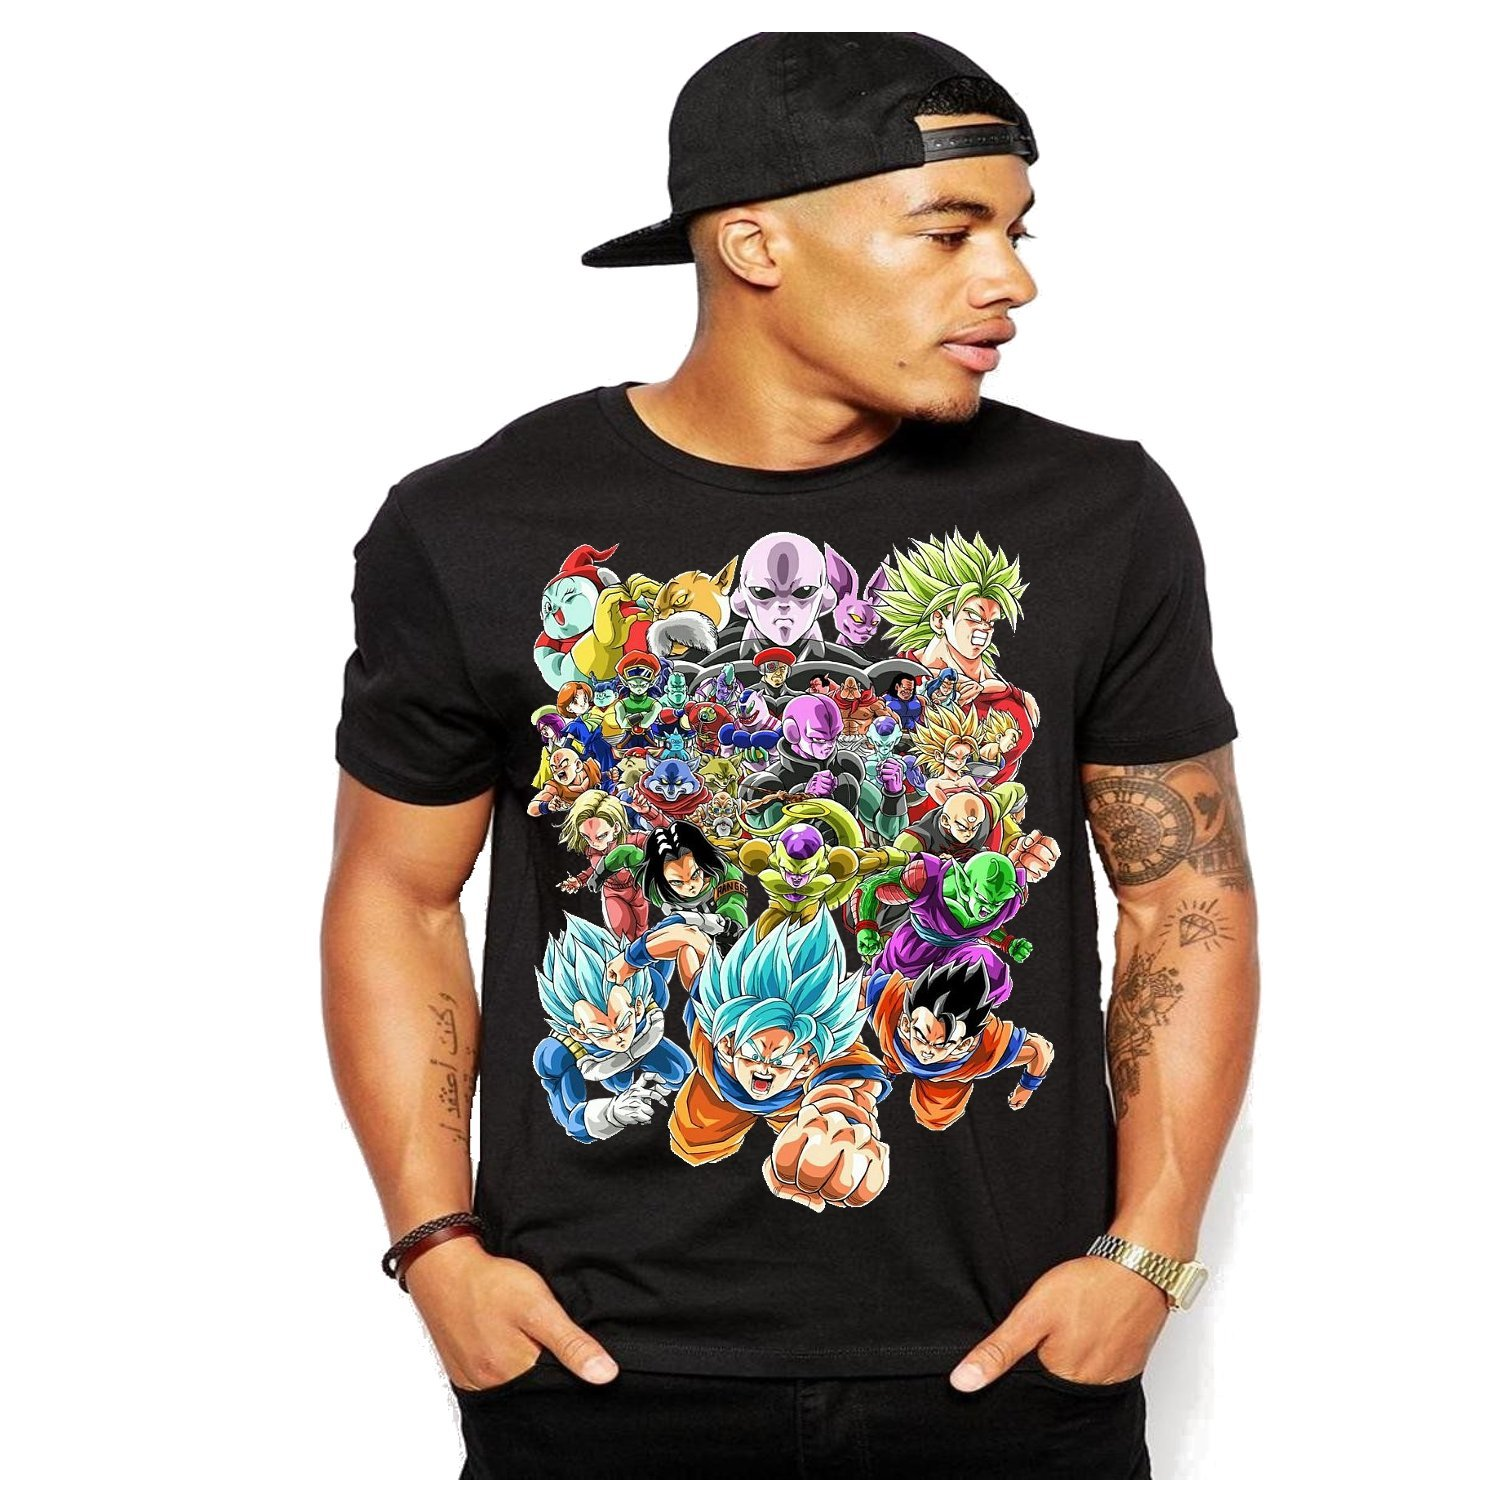 Tournament of Power Fighters Dragon Ball Z Heroes Super Tee T-Shirt S-3XL